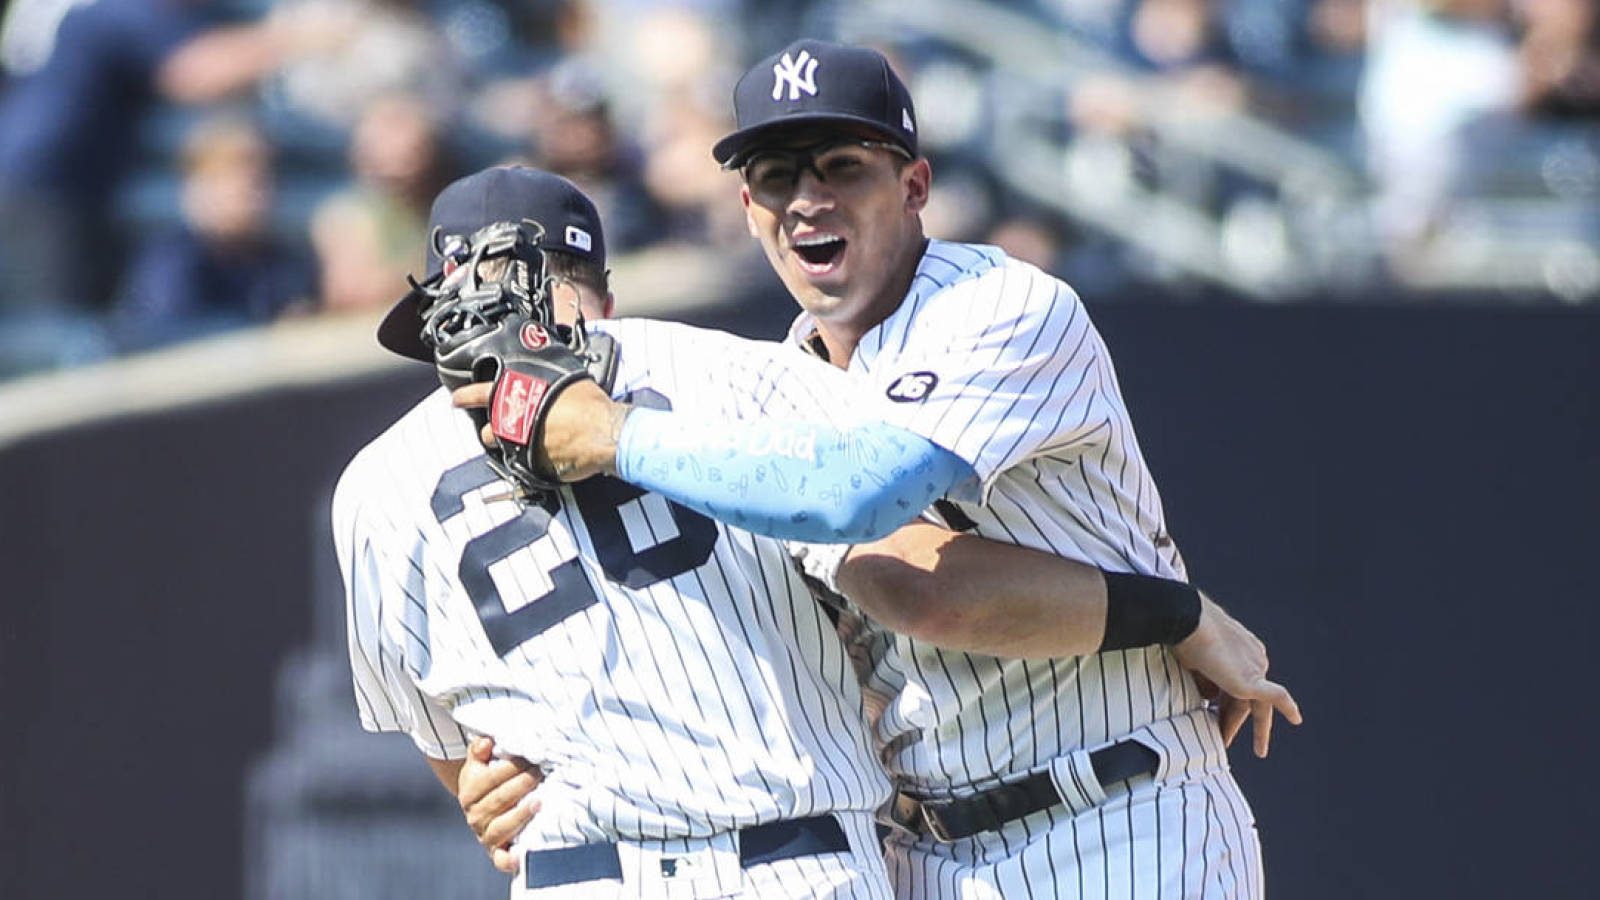 Yankees seal victory with triple play to tie MLB record